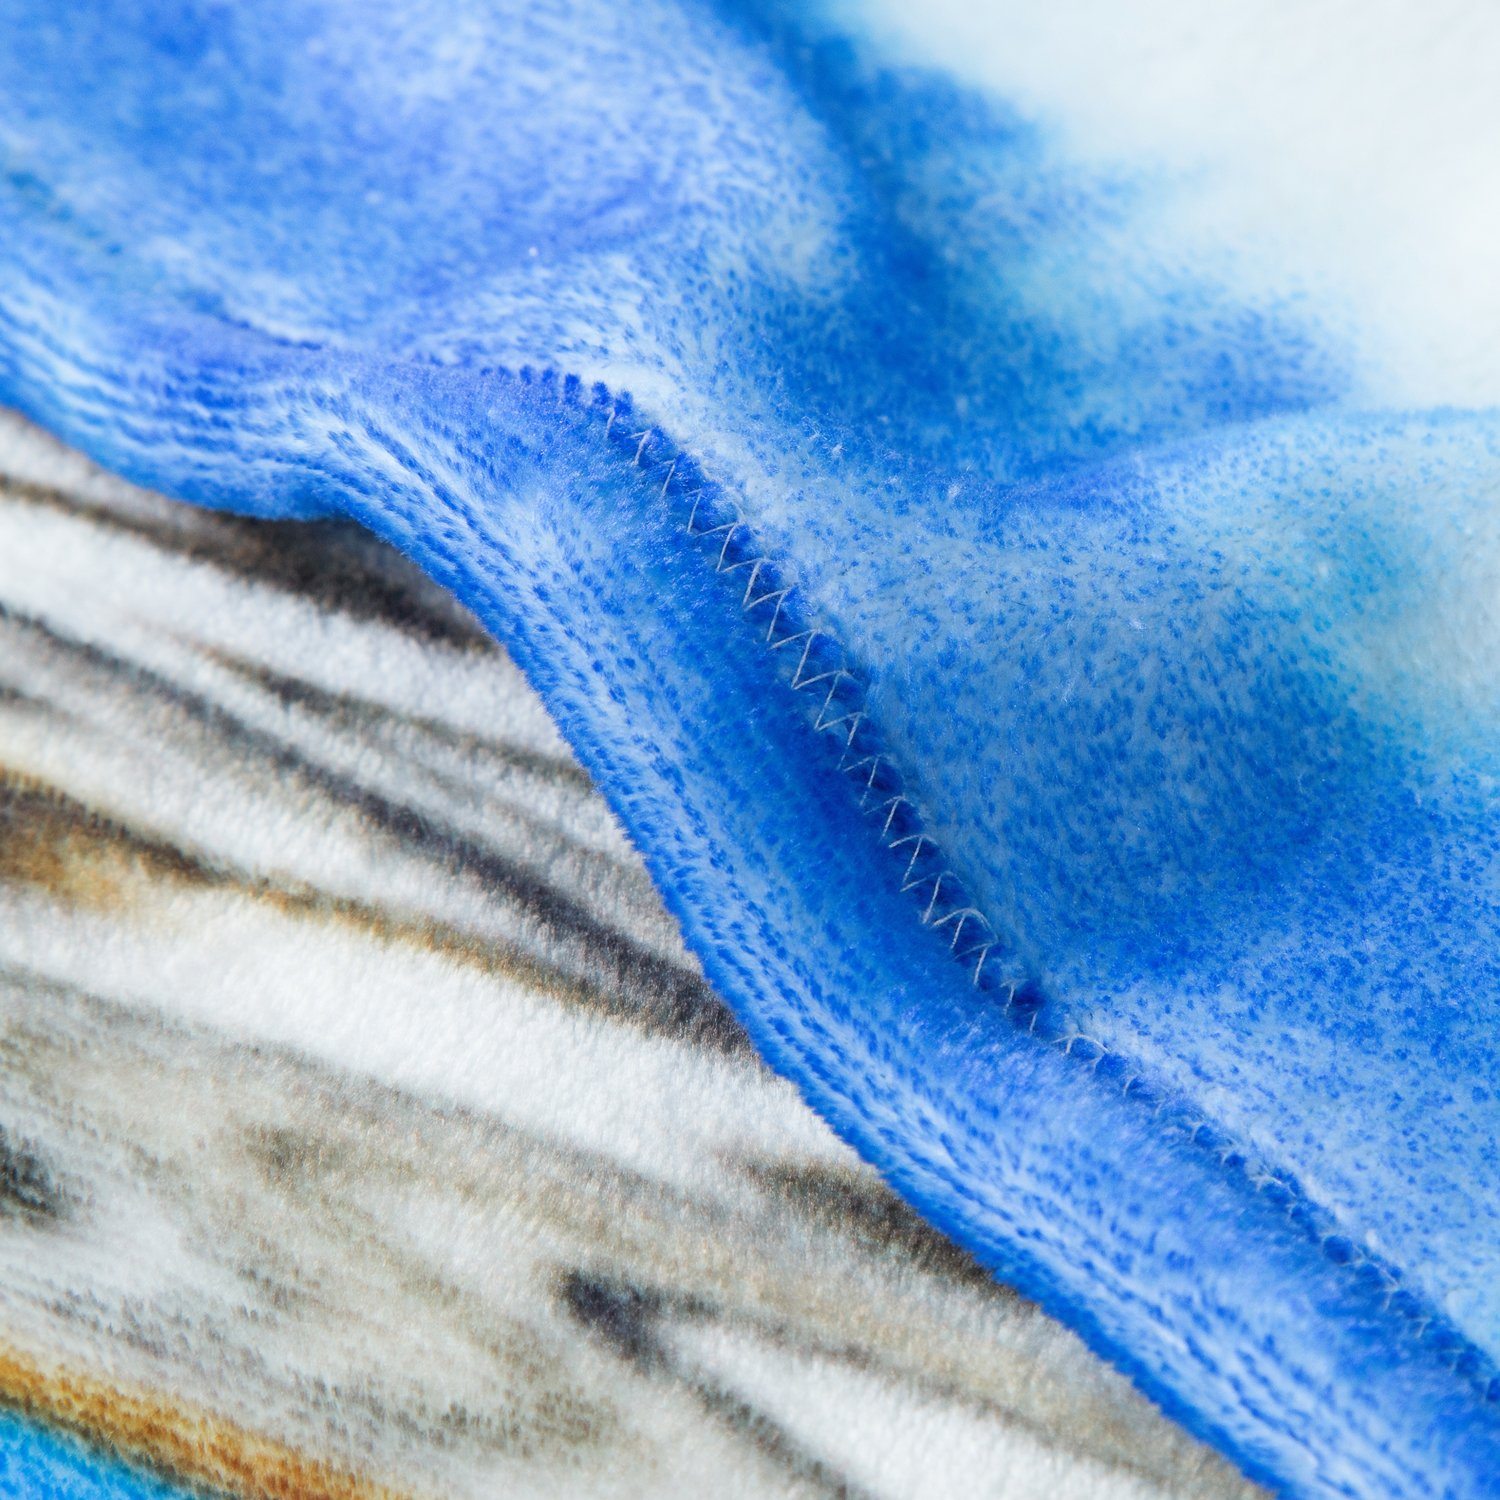 Multicolored Tiger Printed Throw Blanket - Luxury Flannel Fleece Throw Fuzzy Animal Blanket 50\